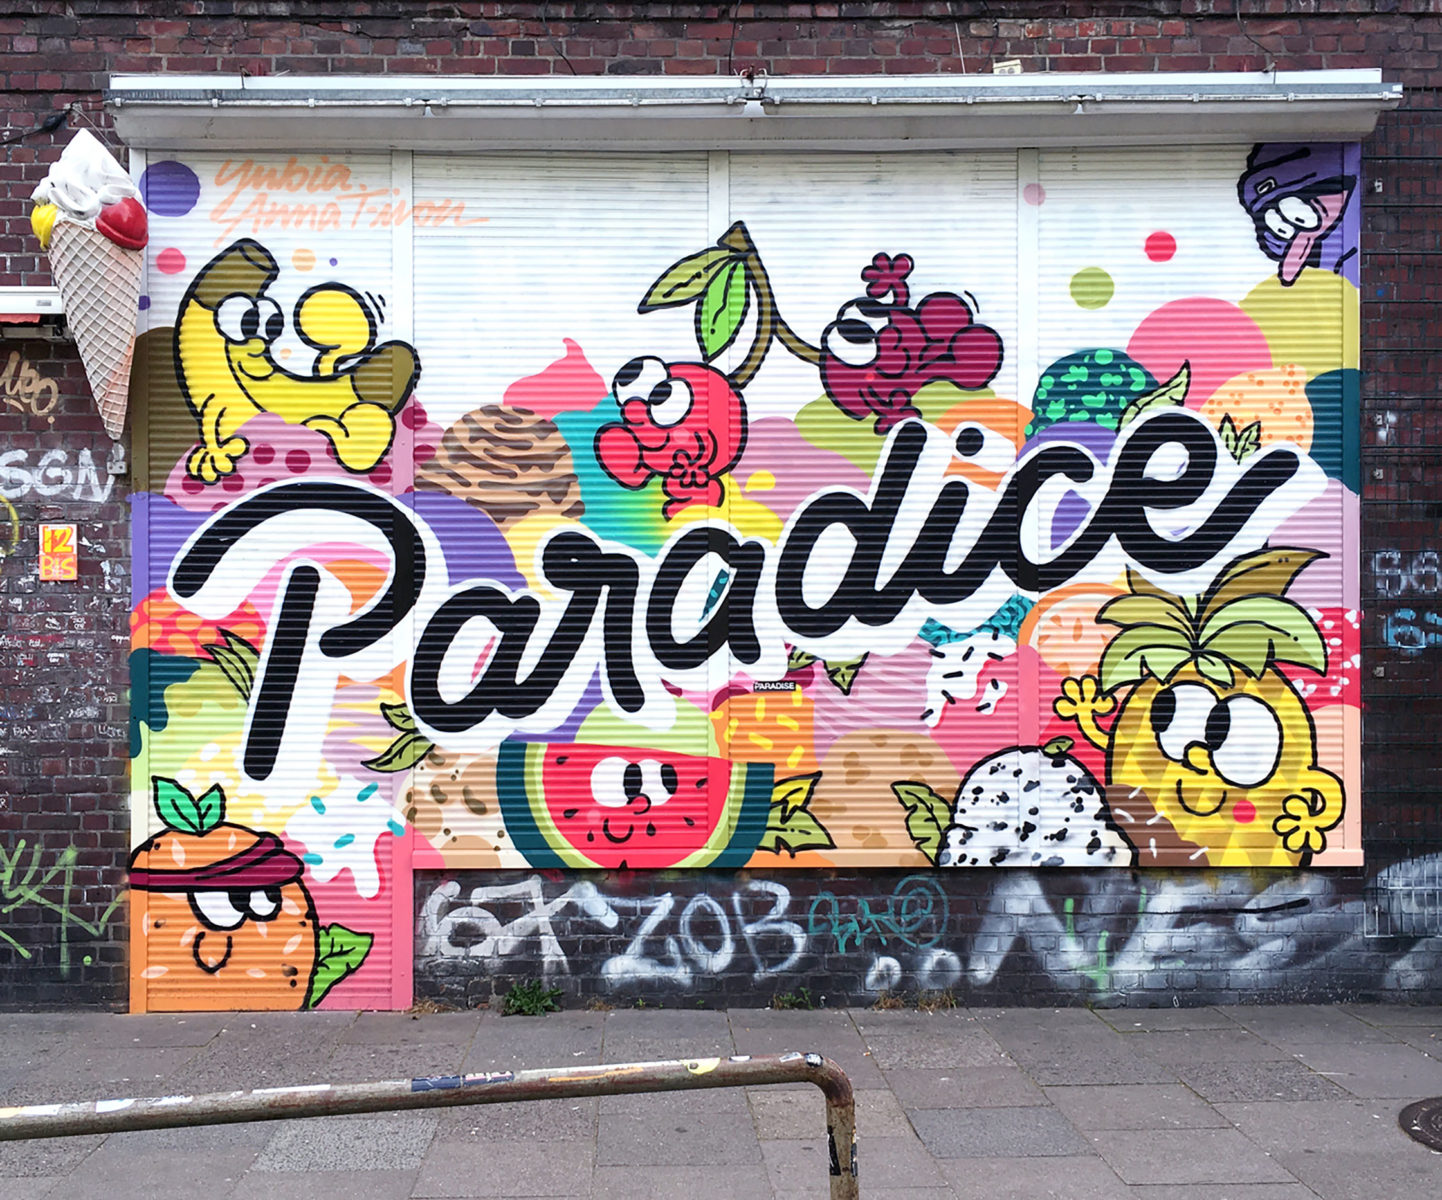 (EN) Beizini Paradice, 2016: Commissioned work on the shutters of an ice cream shop in Hamburg's Sternschanze